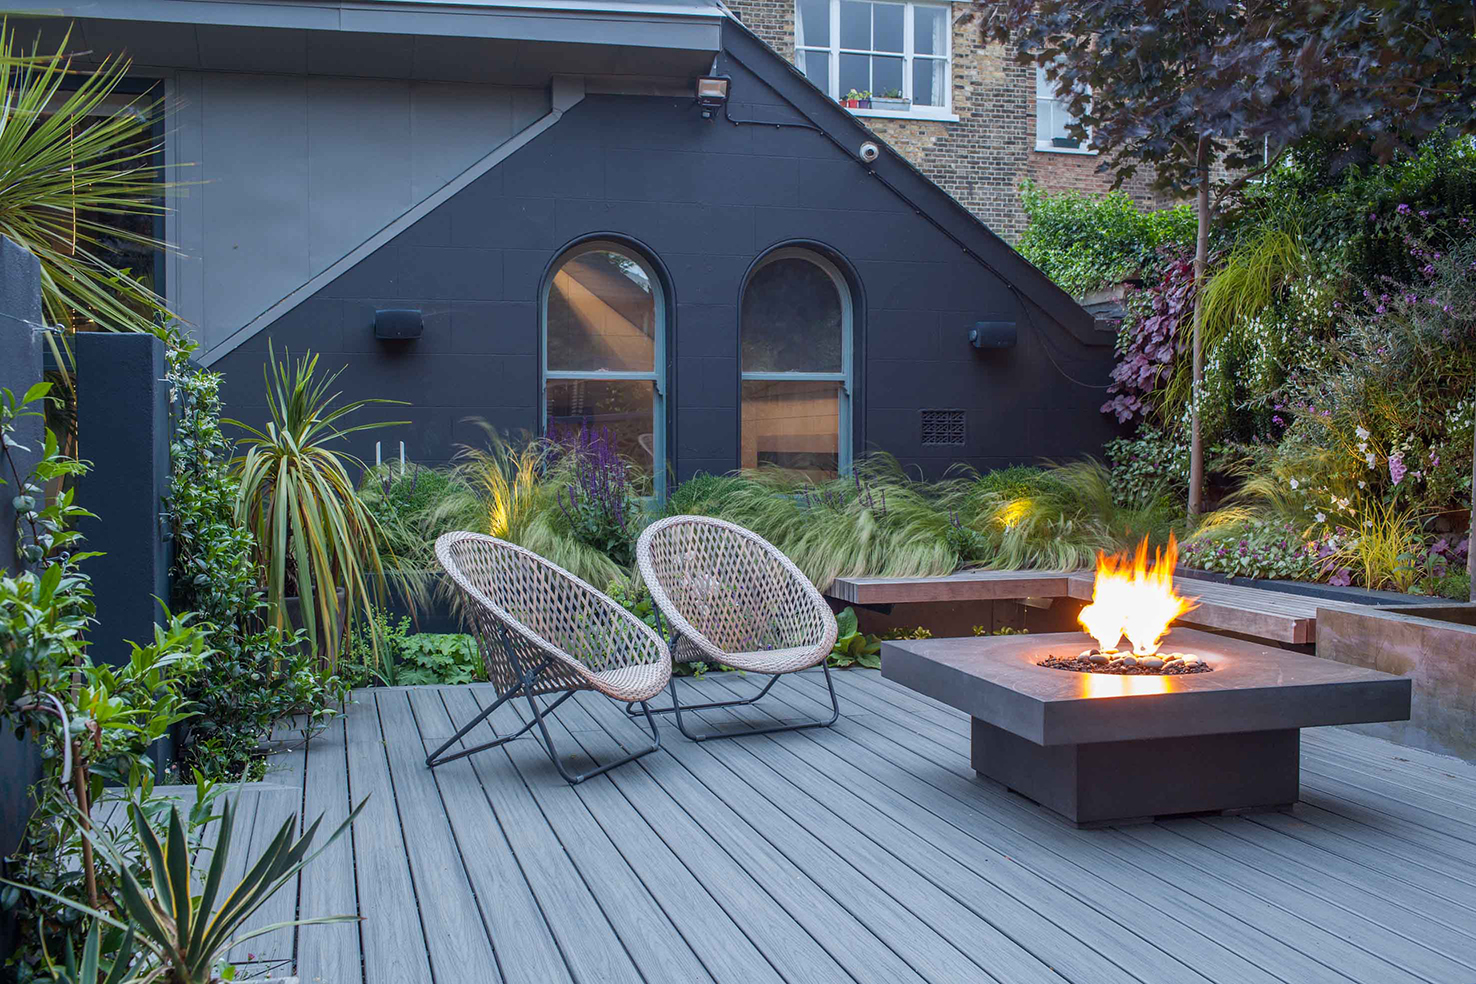 Solus decor gas fire pit